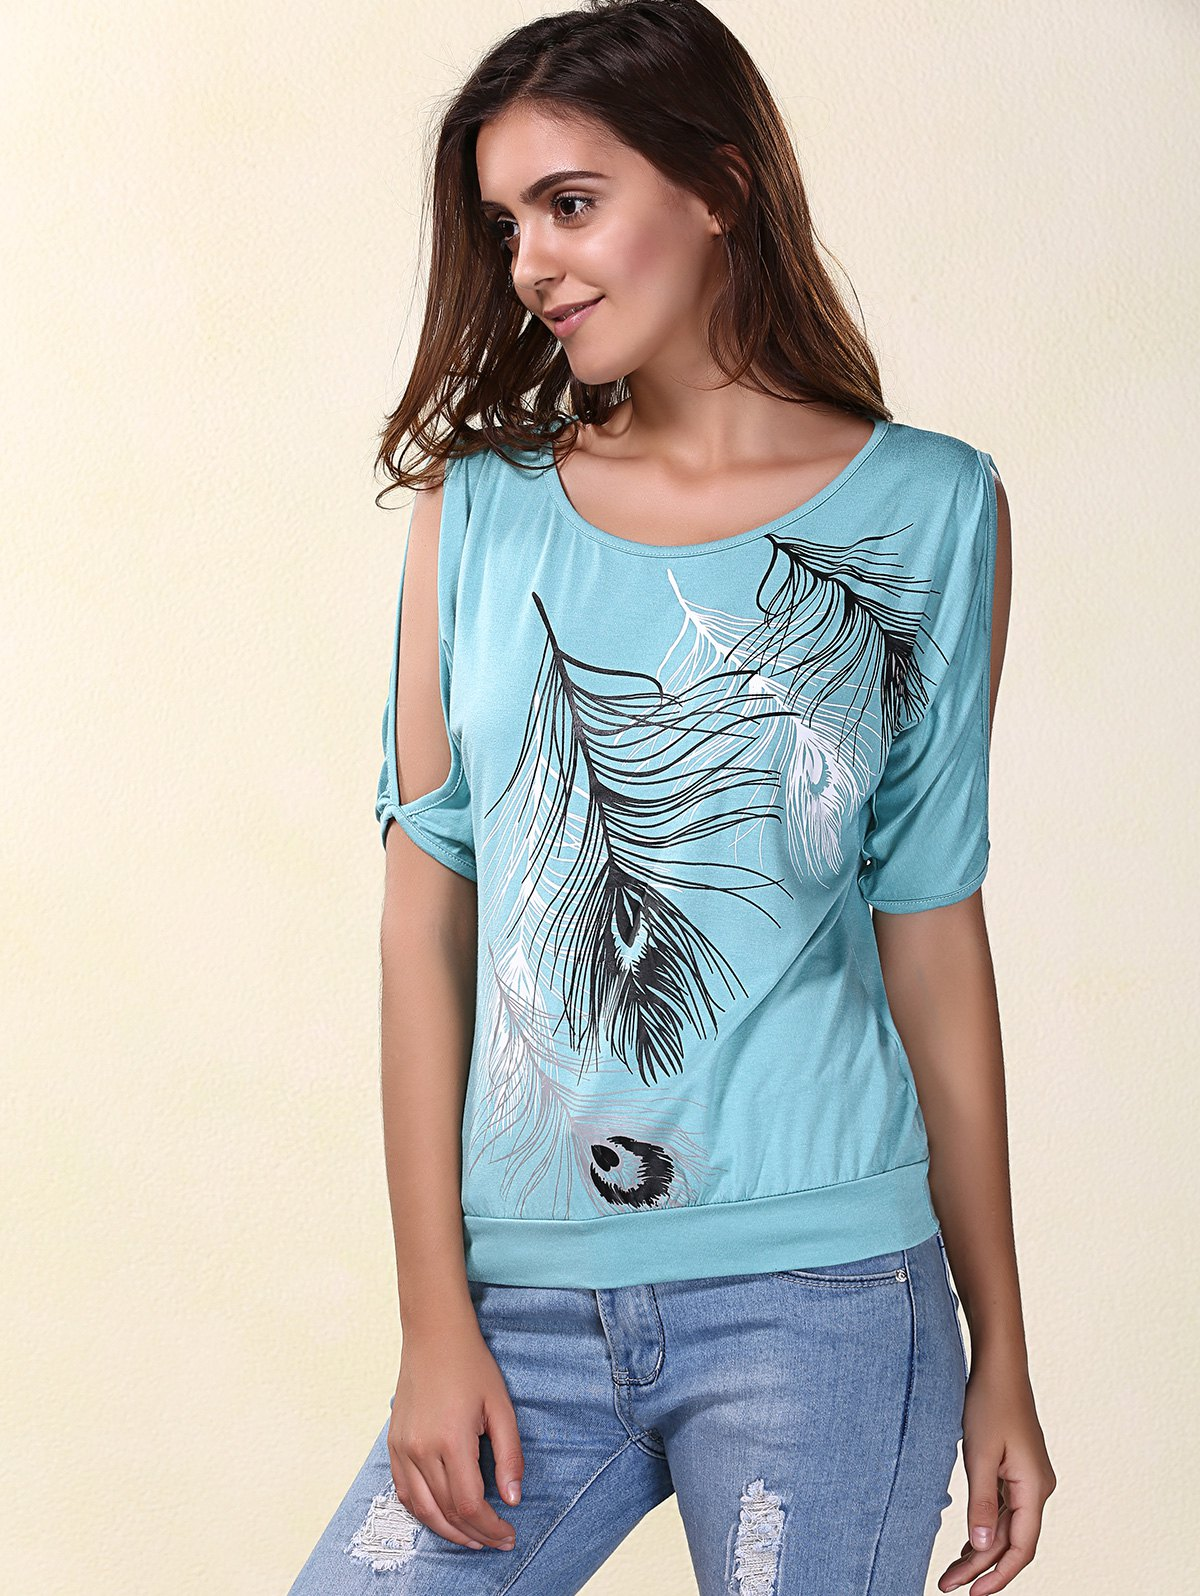 Stylish Scoop Neck Printed Short Sleeves Cold Shoulder T-Shirt For Women stylish printed scoop neck short sleeves cold shoulder t shirt for women